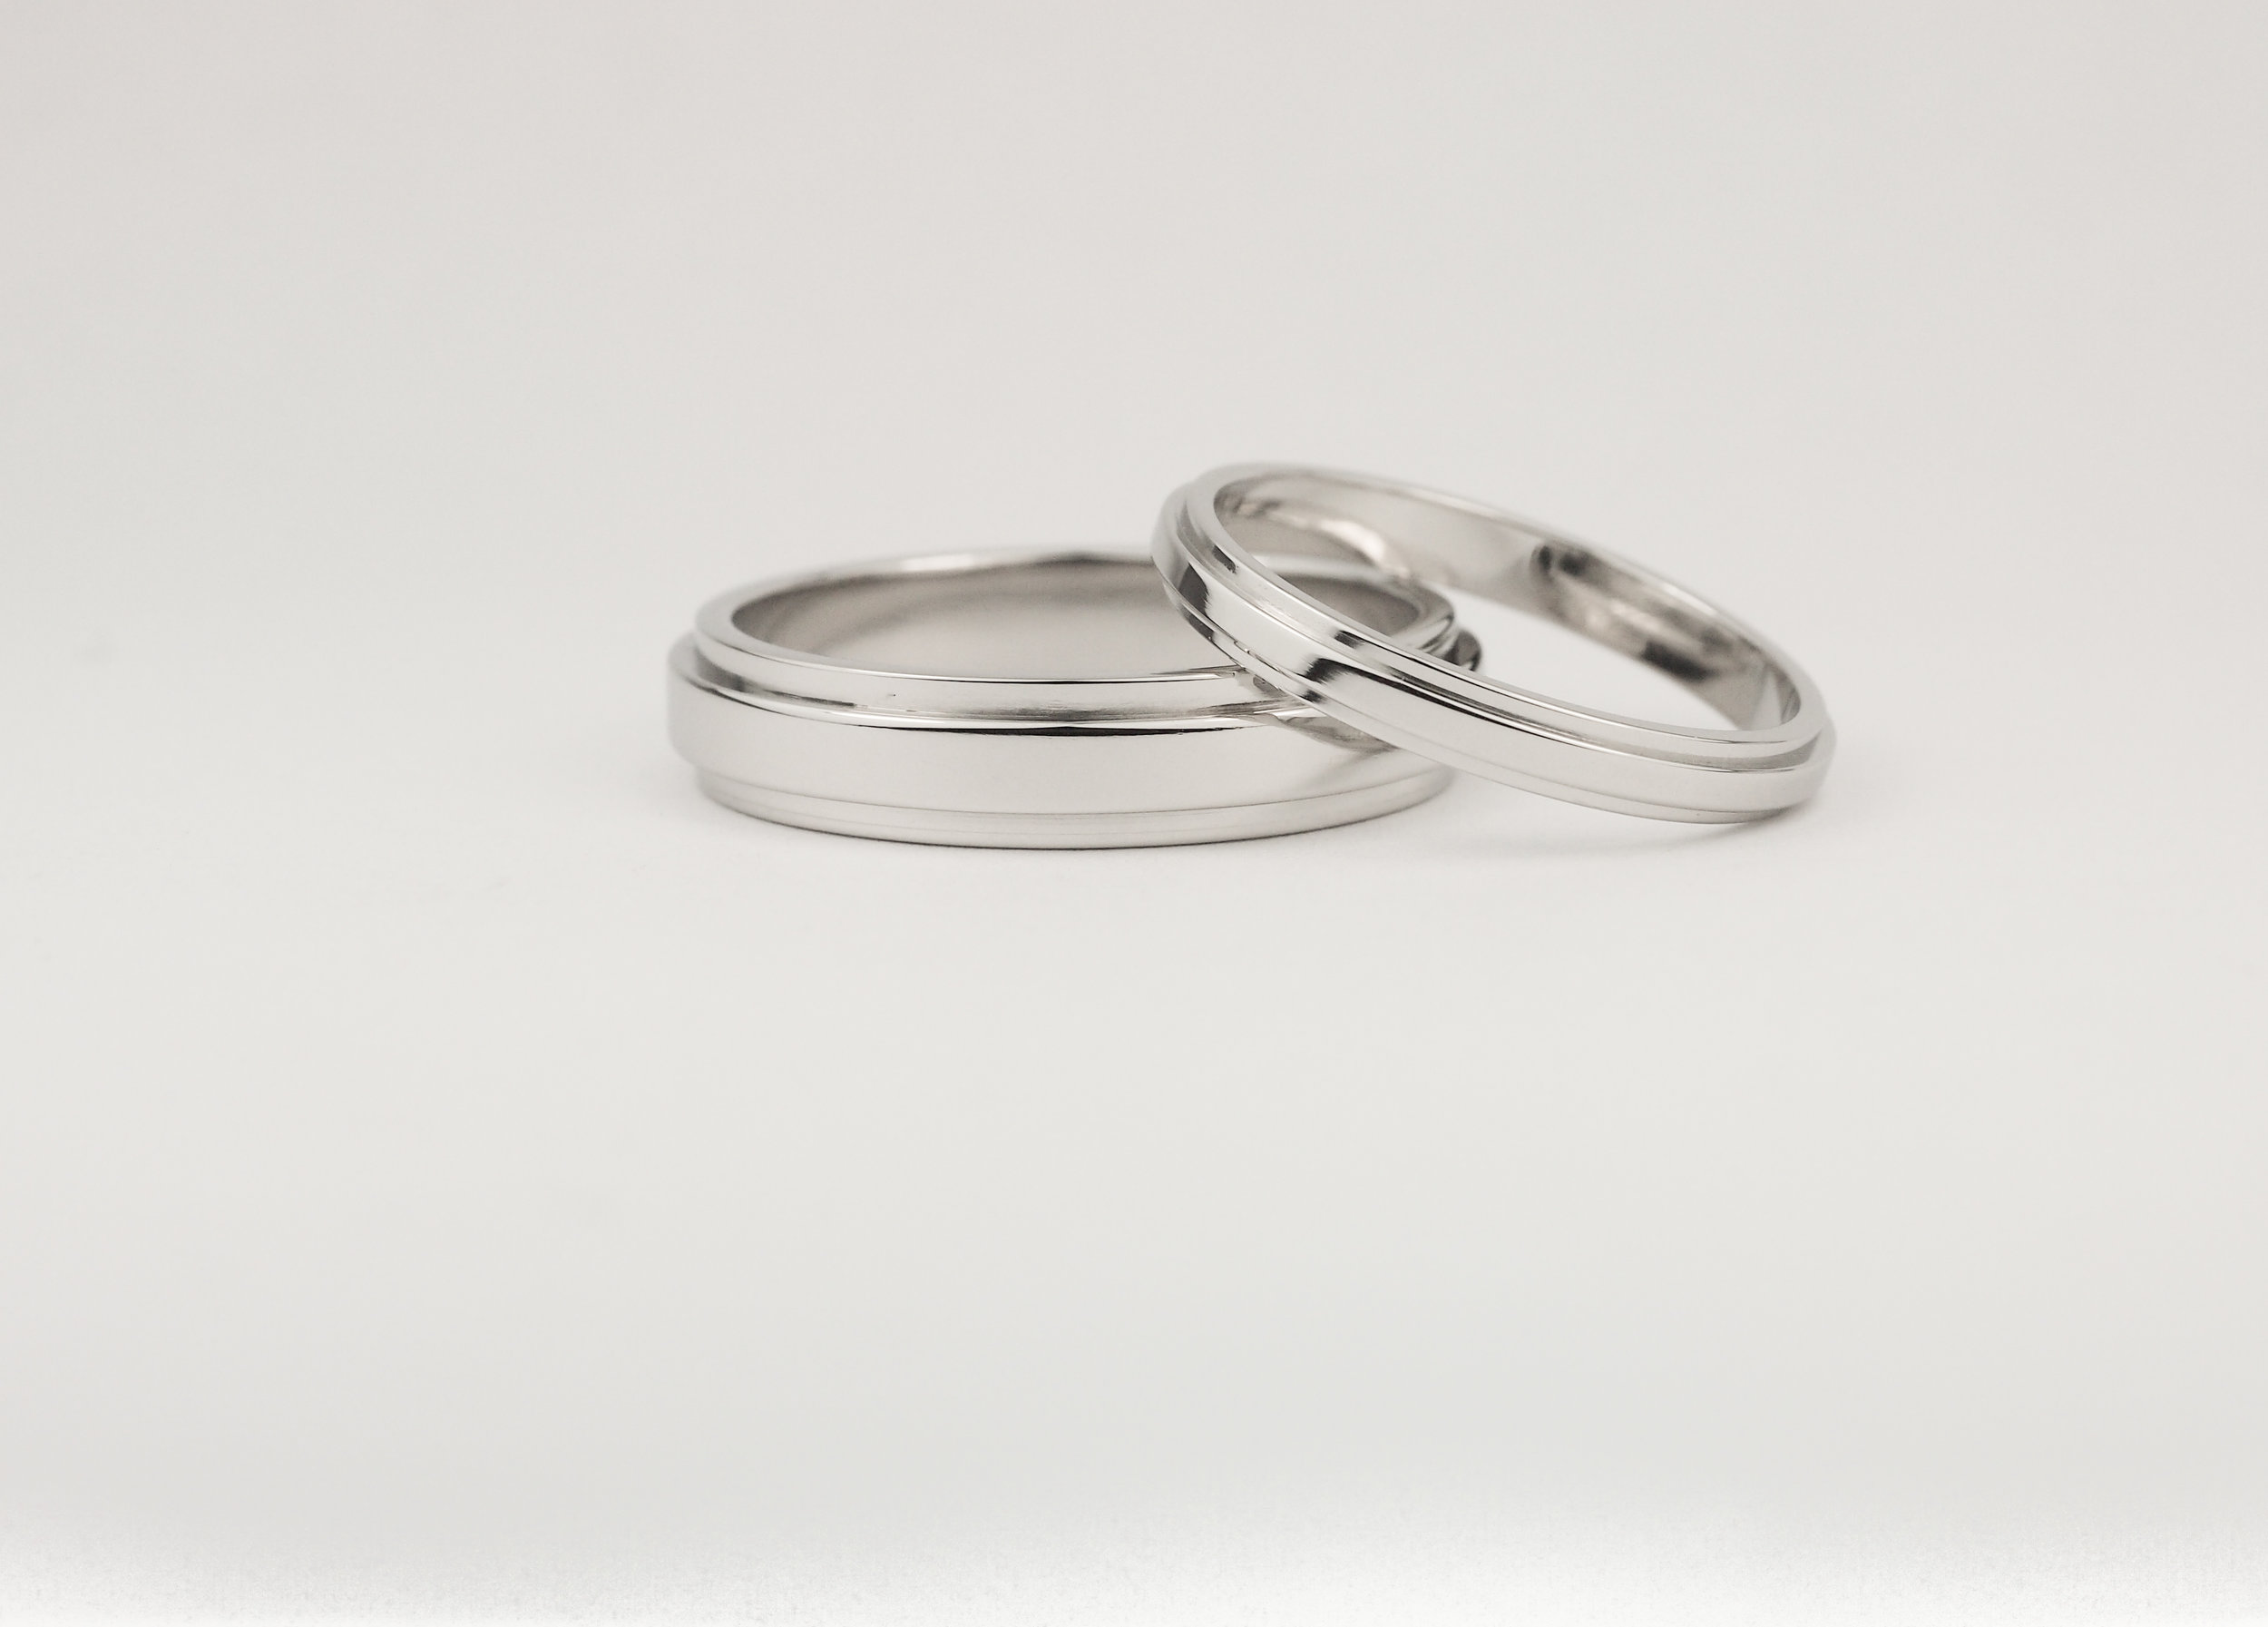 Matching art deco stepped rings in platinum